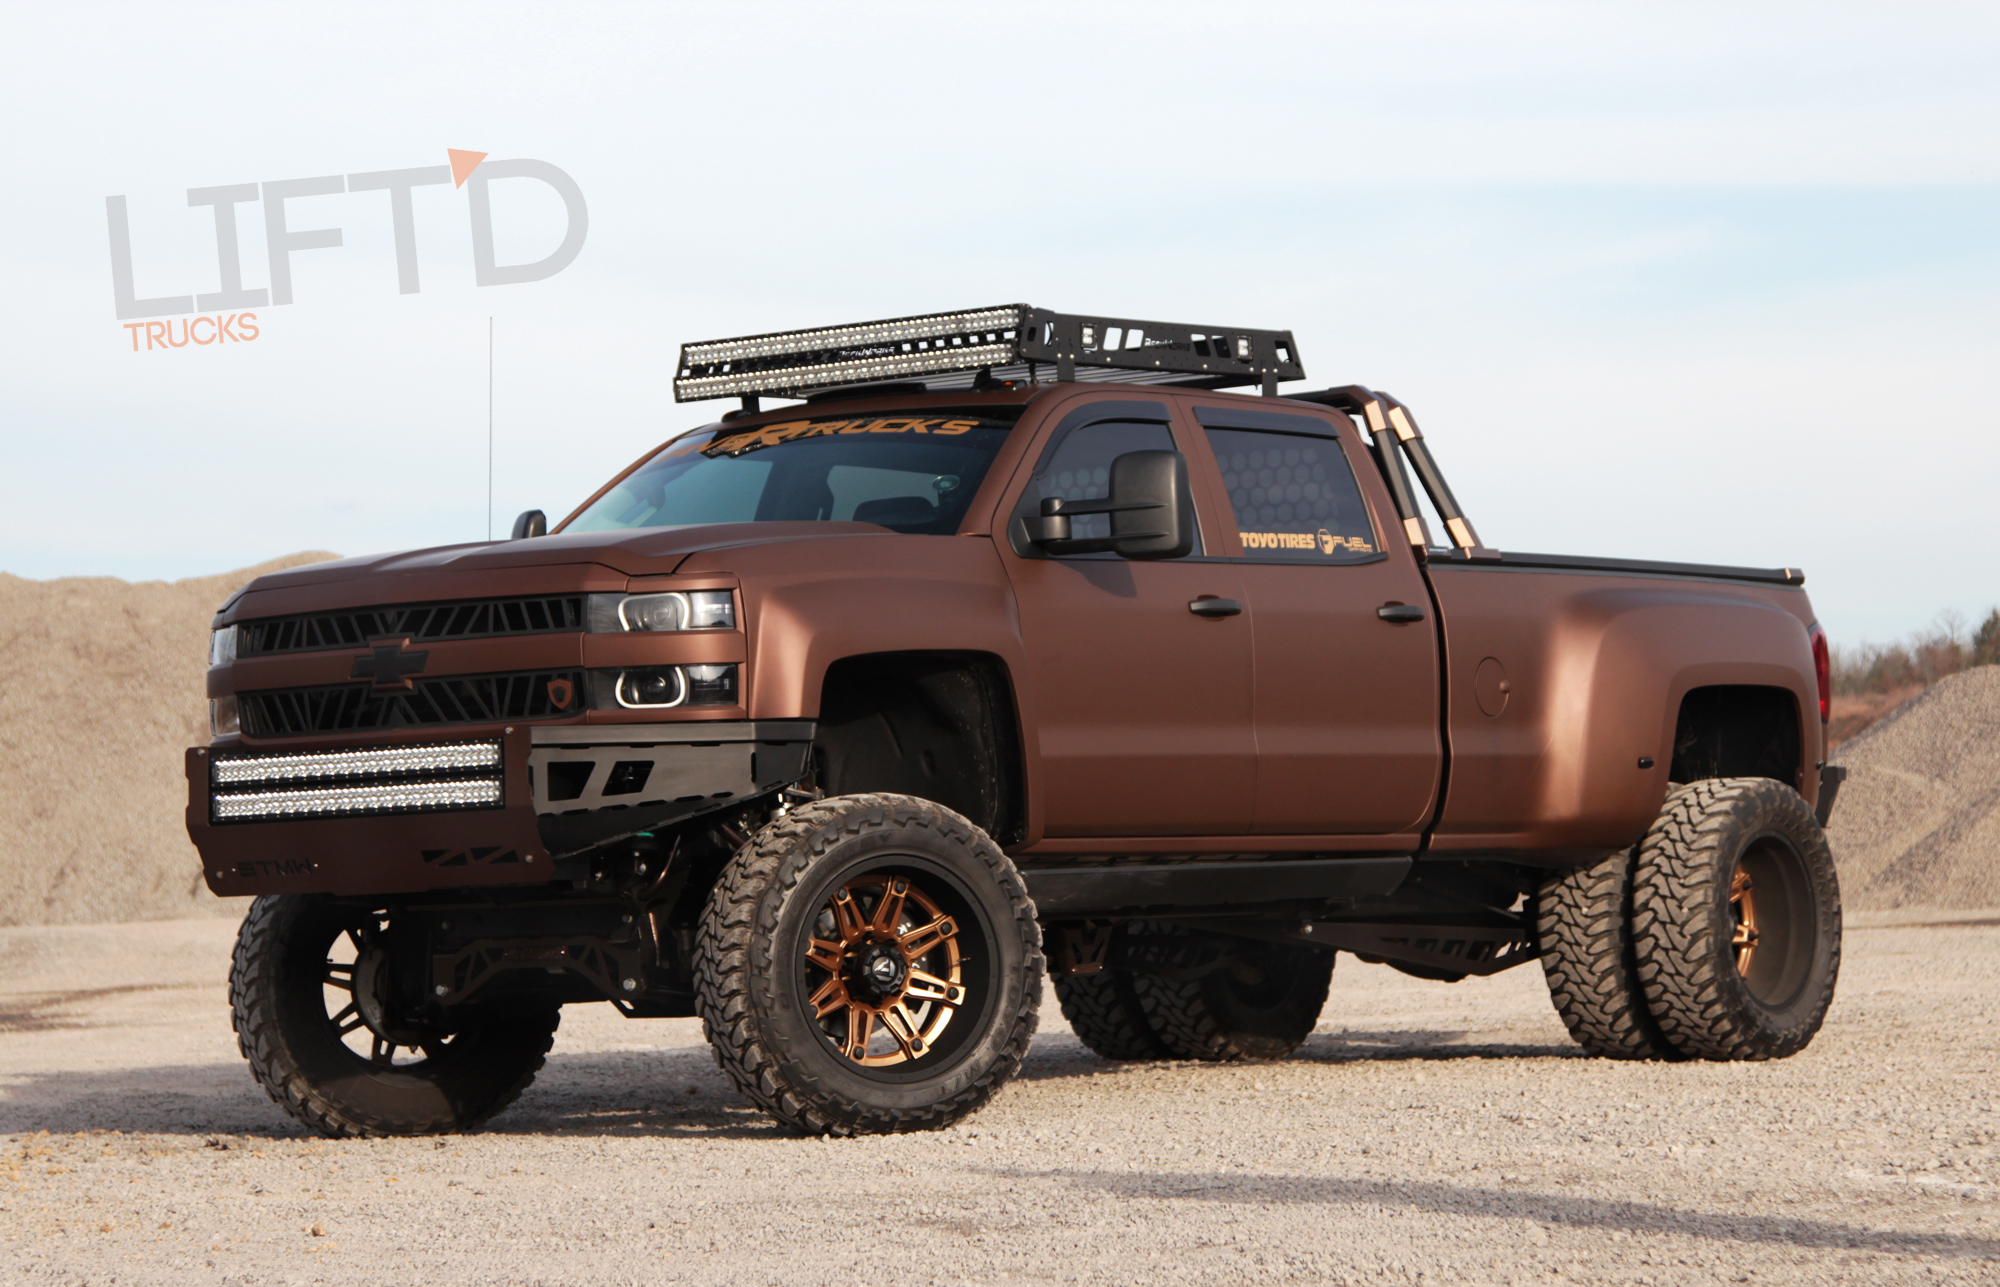 recluse keg media s 2015 chevy silverado hd3500 dually lift 39 d trucks. Black Bedroom Furniture Sets. Home Design Ideas